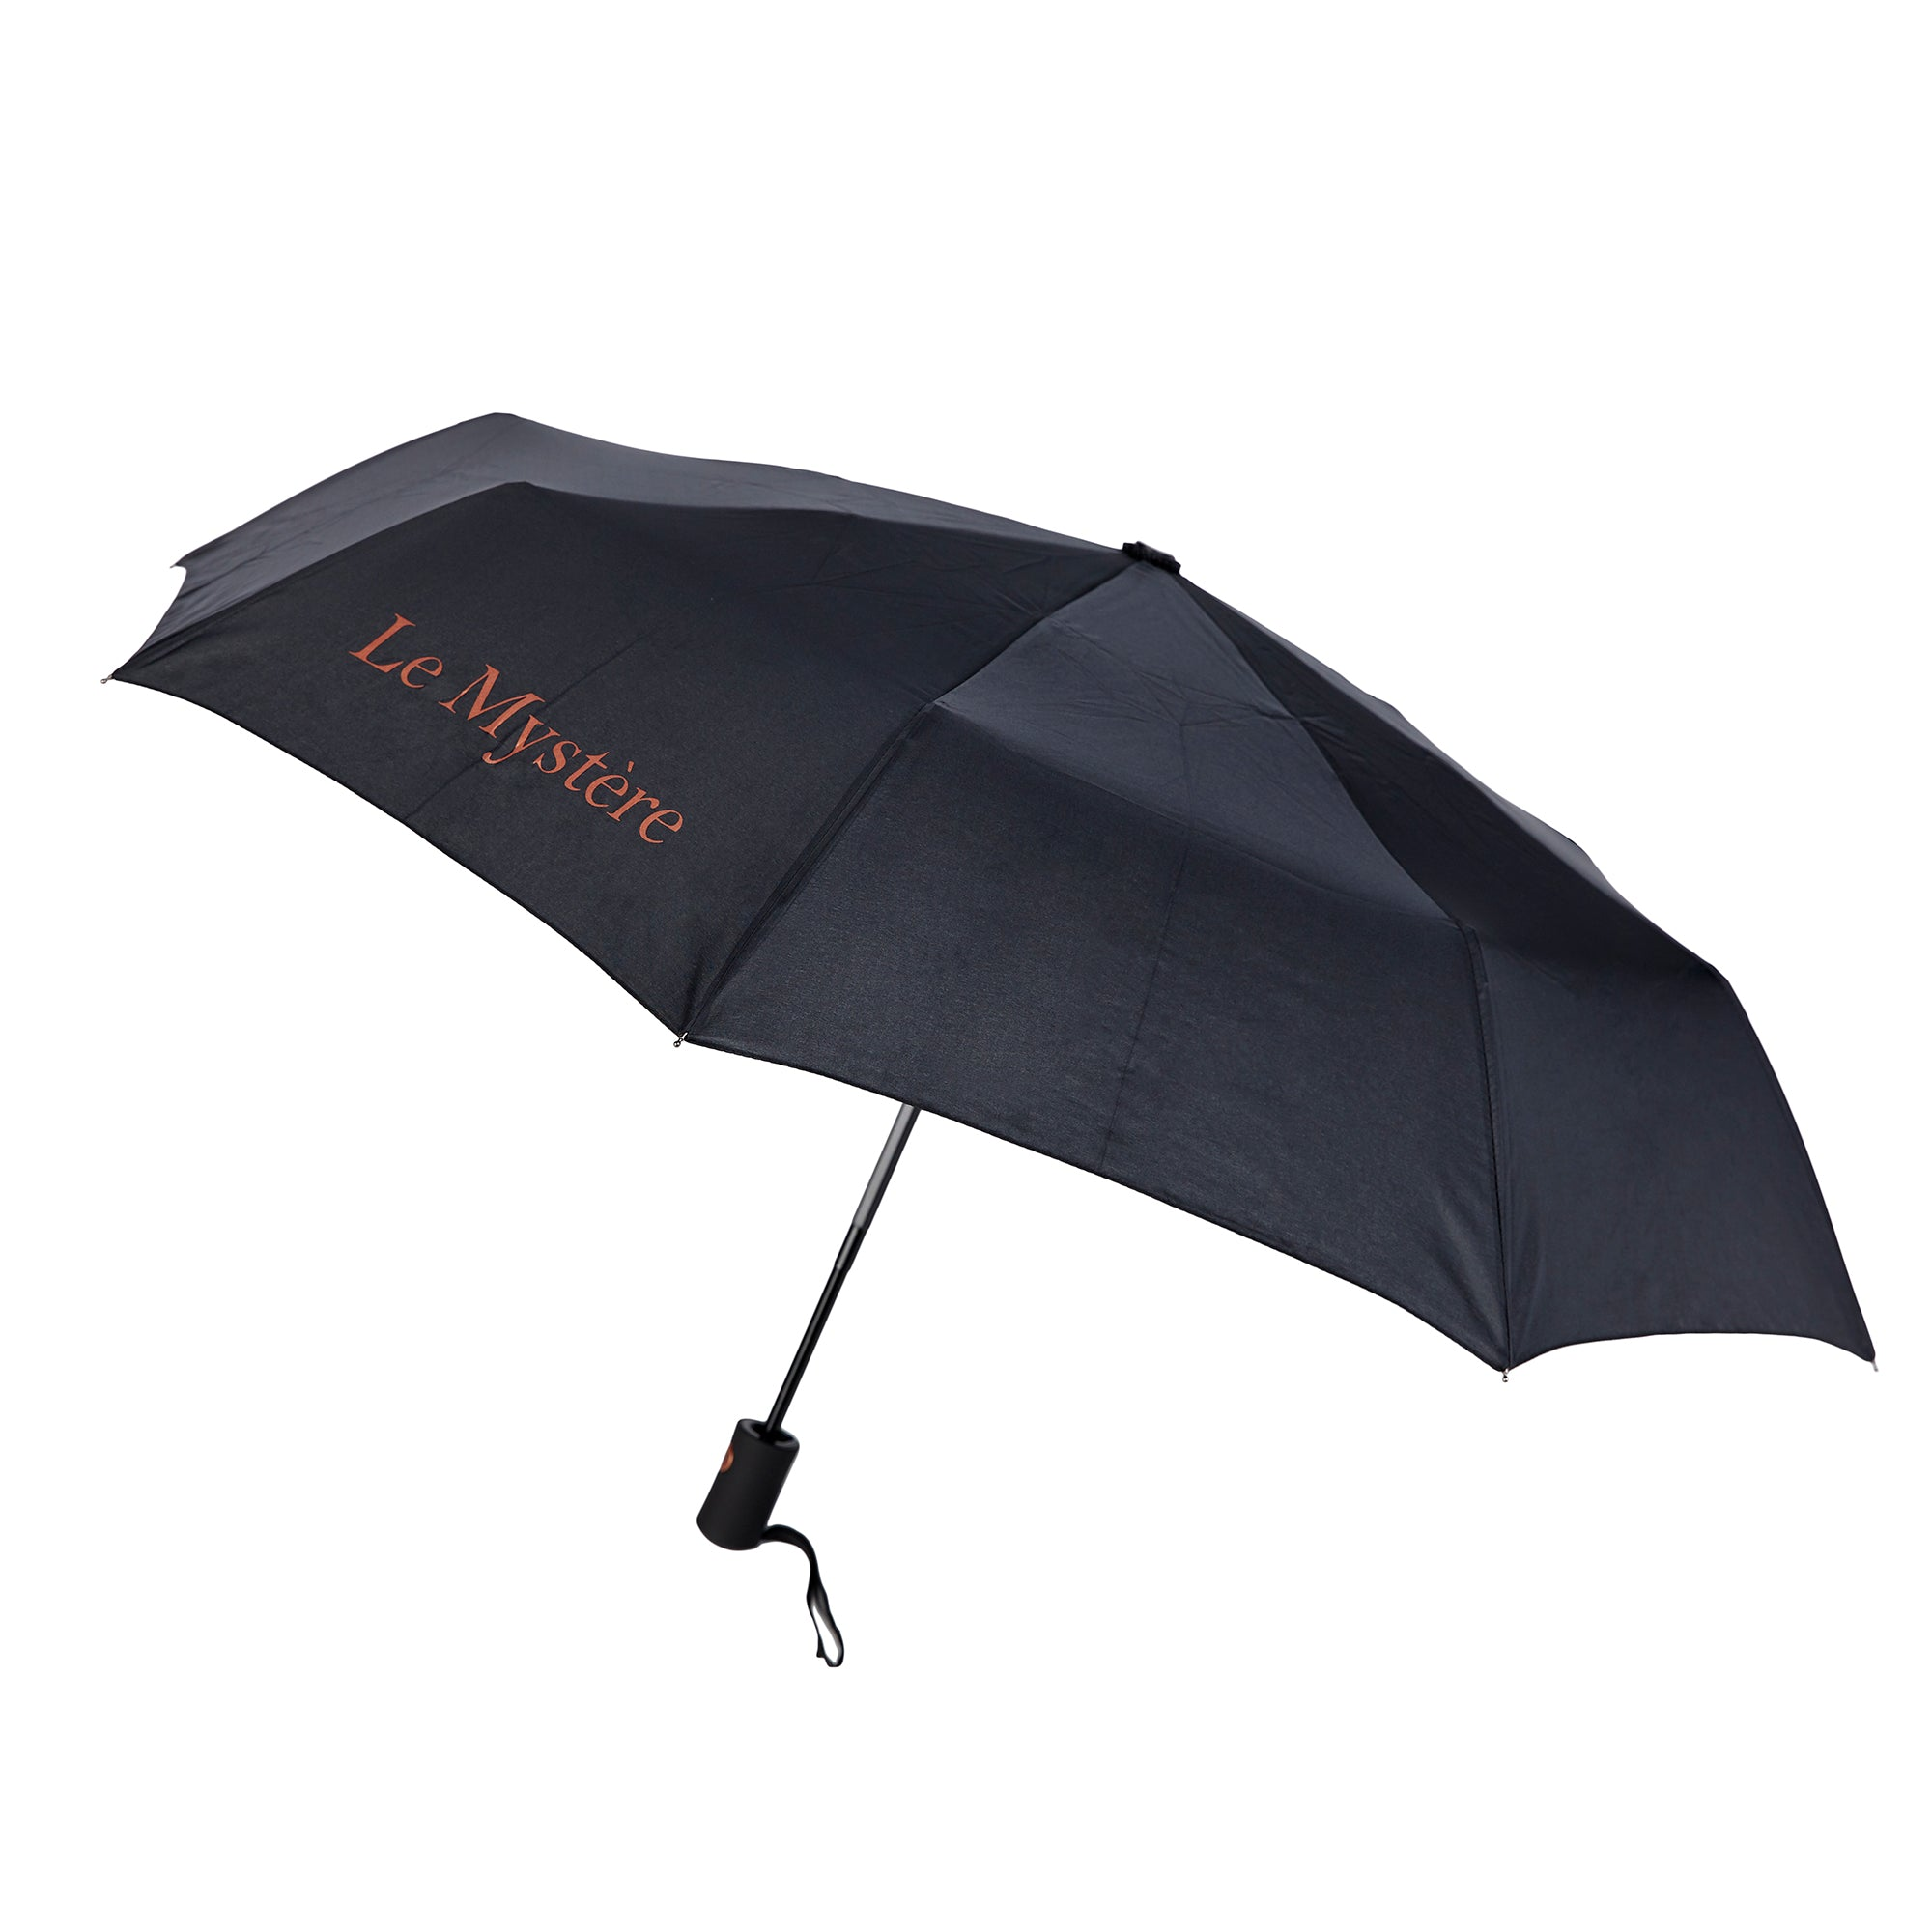 LM Black Umbrella